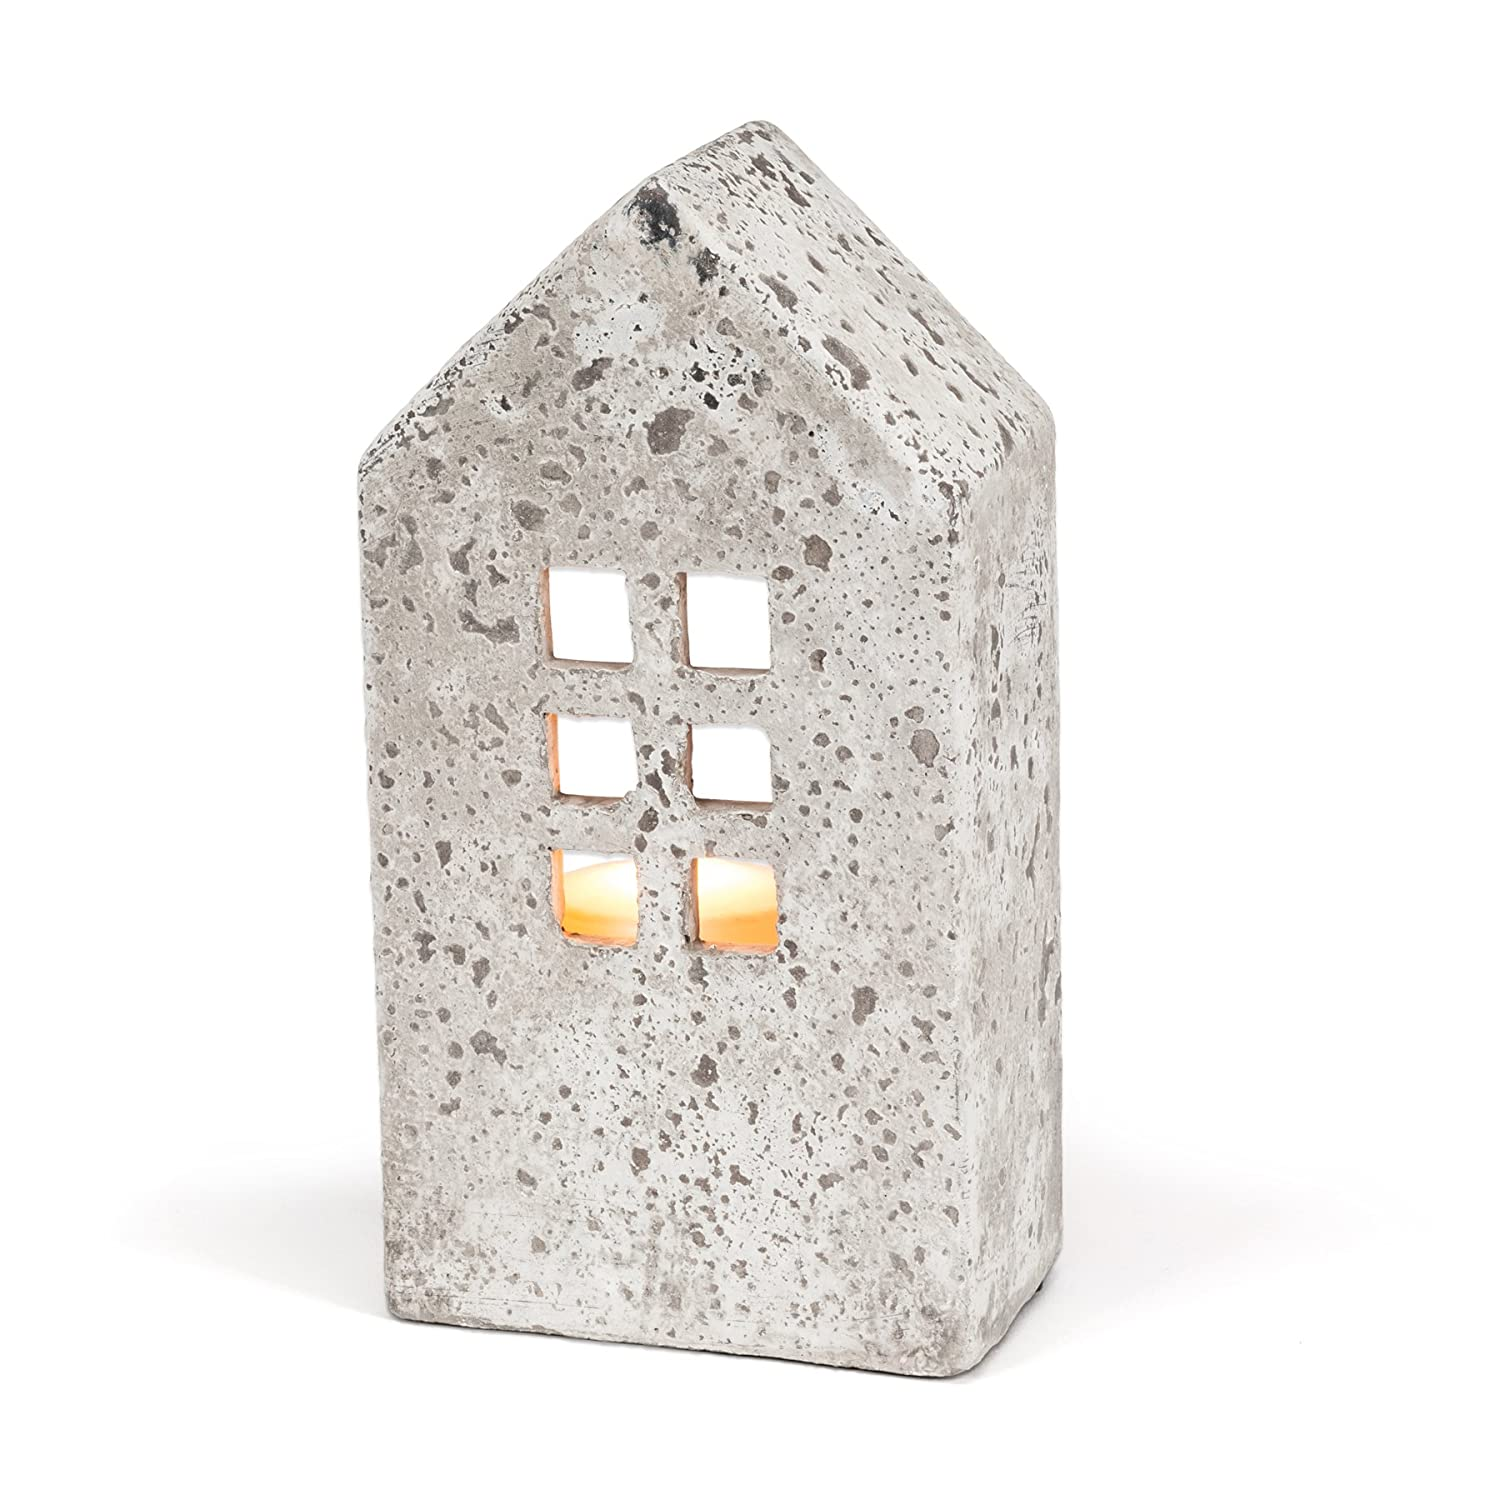 Abbott Collection Home Tall House Candle Holder WEICHI 27-RELIC/7505 LG